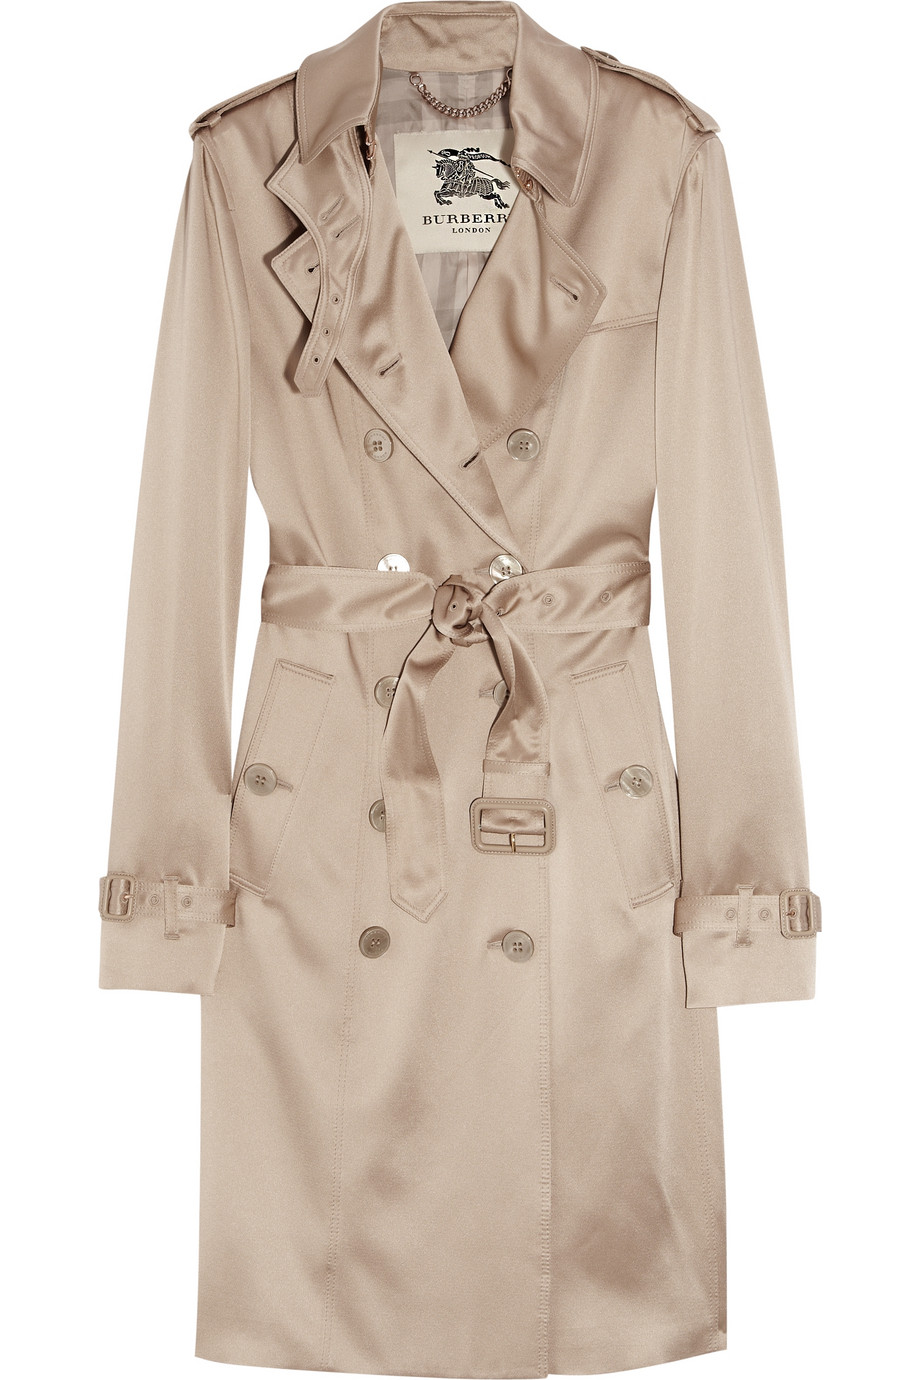 Lyst Burberry Silk Crepe De Chine Trench Coat In Natural